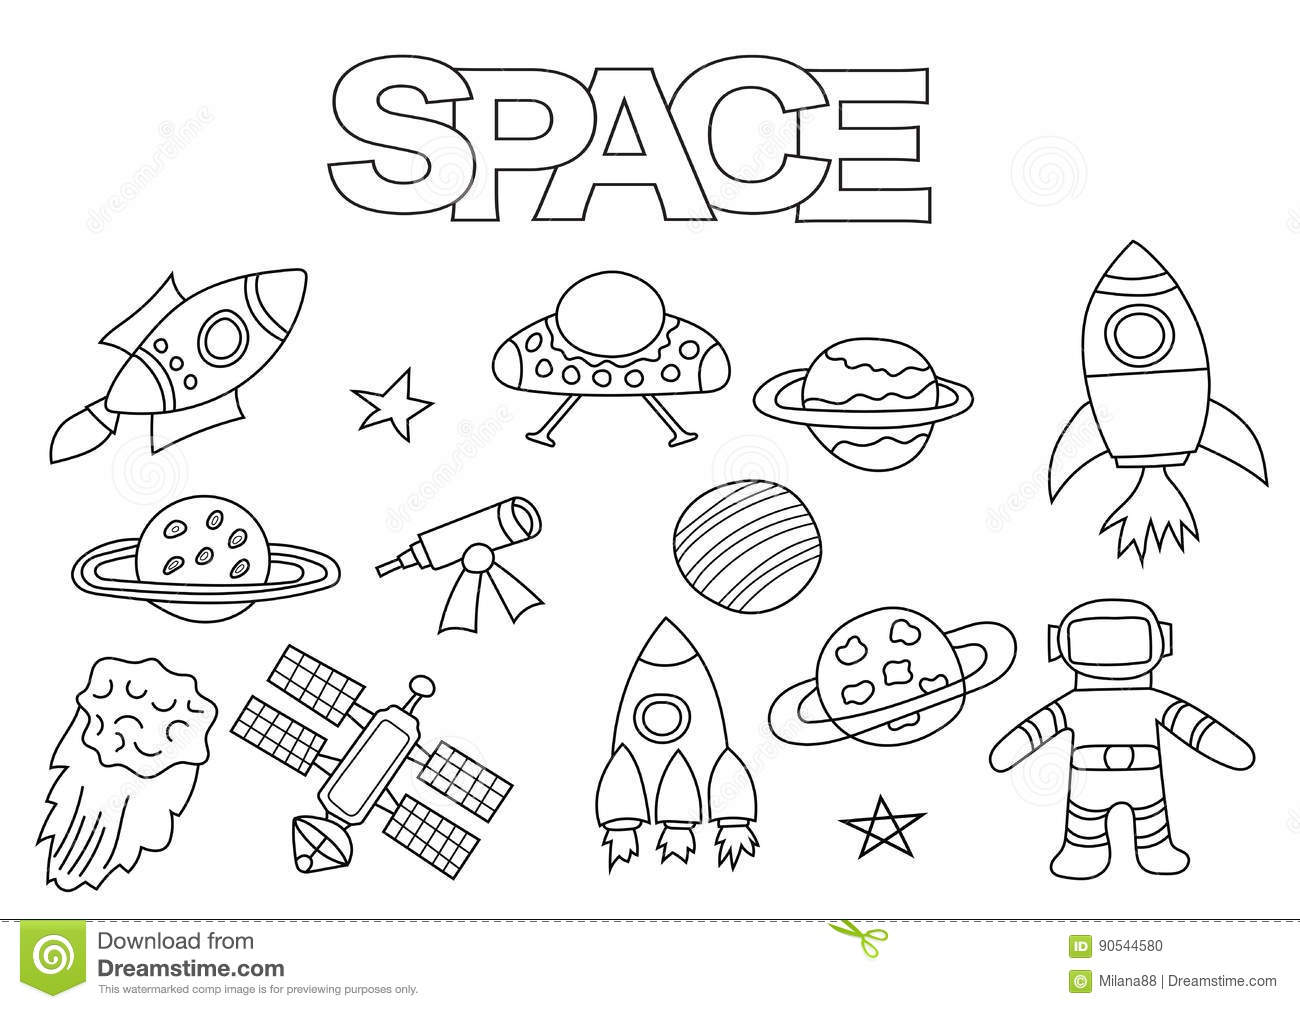 Shuttle cartoons illustrations vector stock images for Stelle da colorare